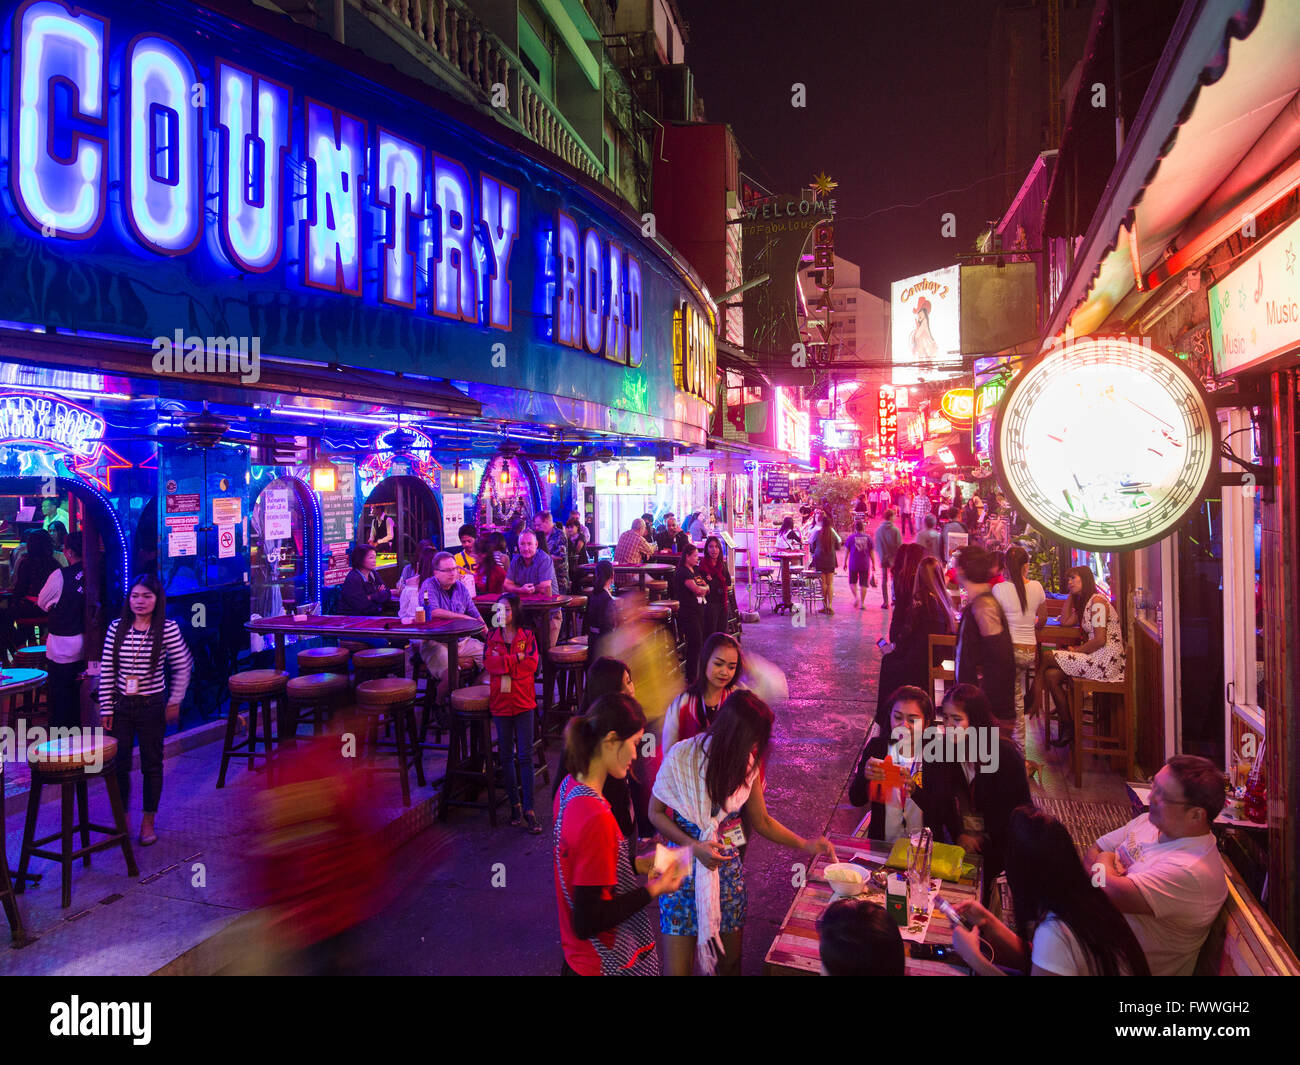 Image result for sukhumvit street bars